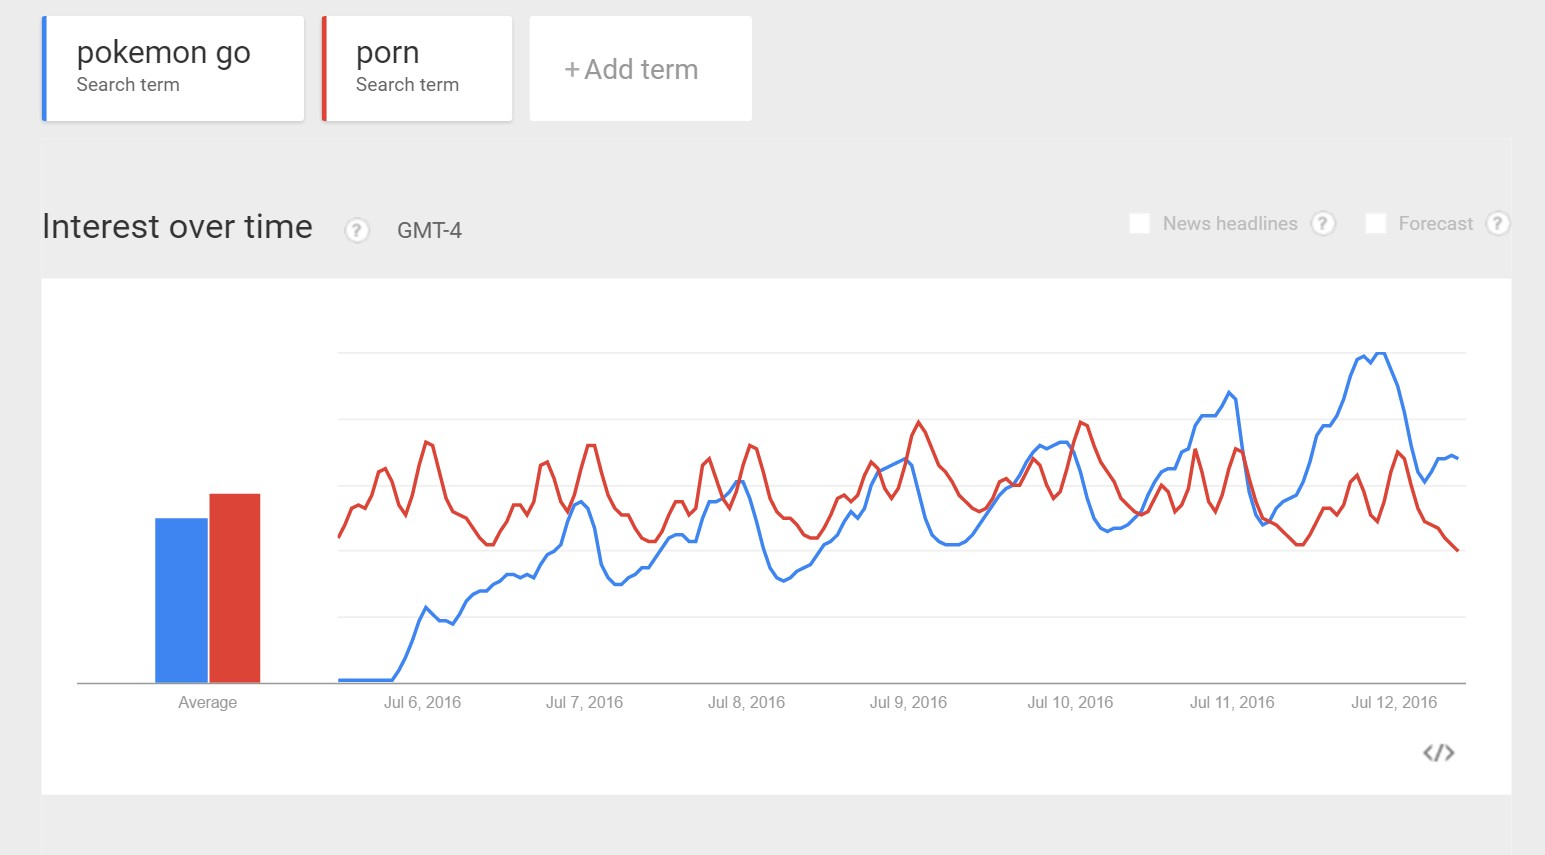 google trends shows pokemon being more popular than porn